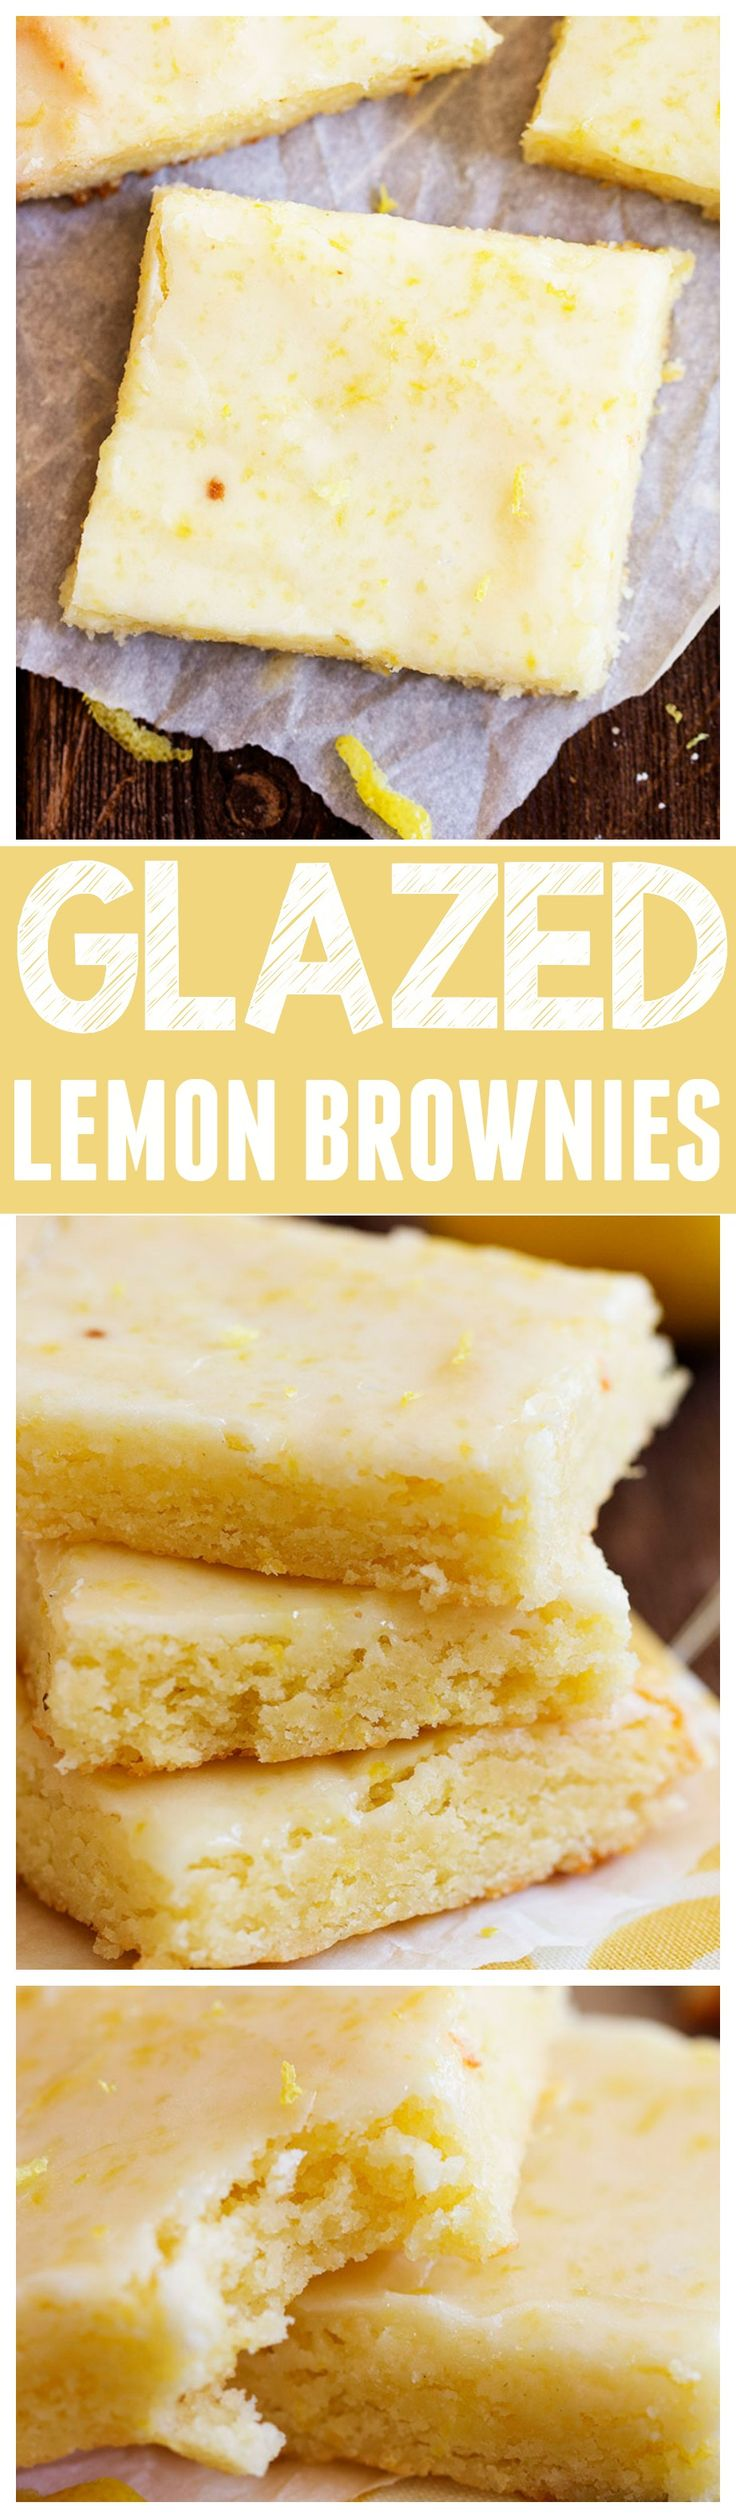 Glazed Lemon Brownies (substitute pineapple juice?)